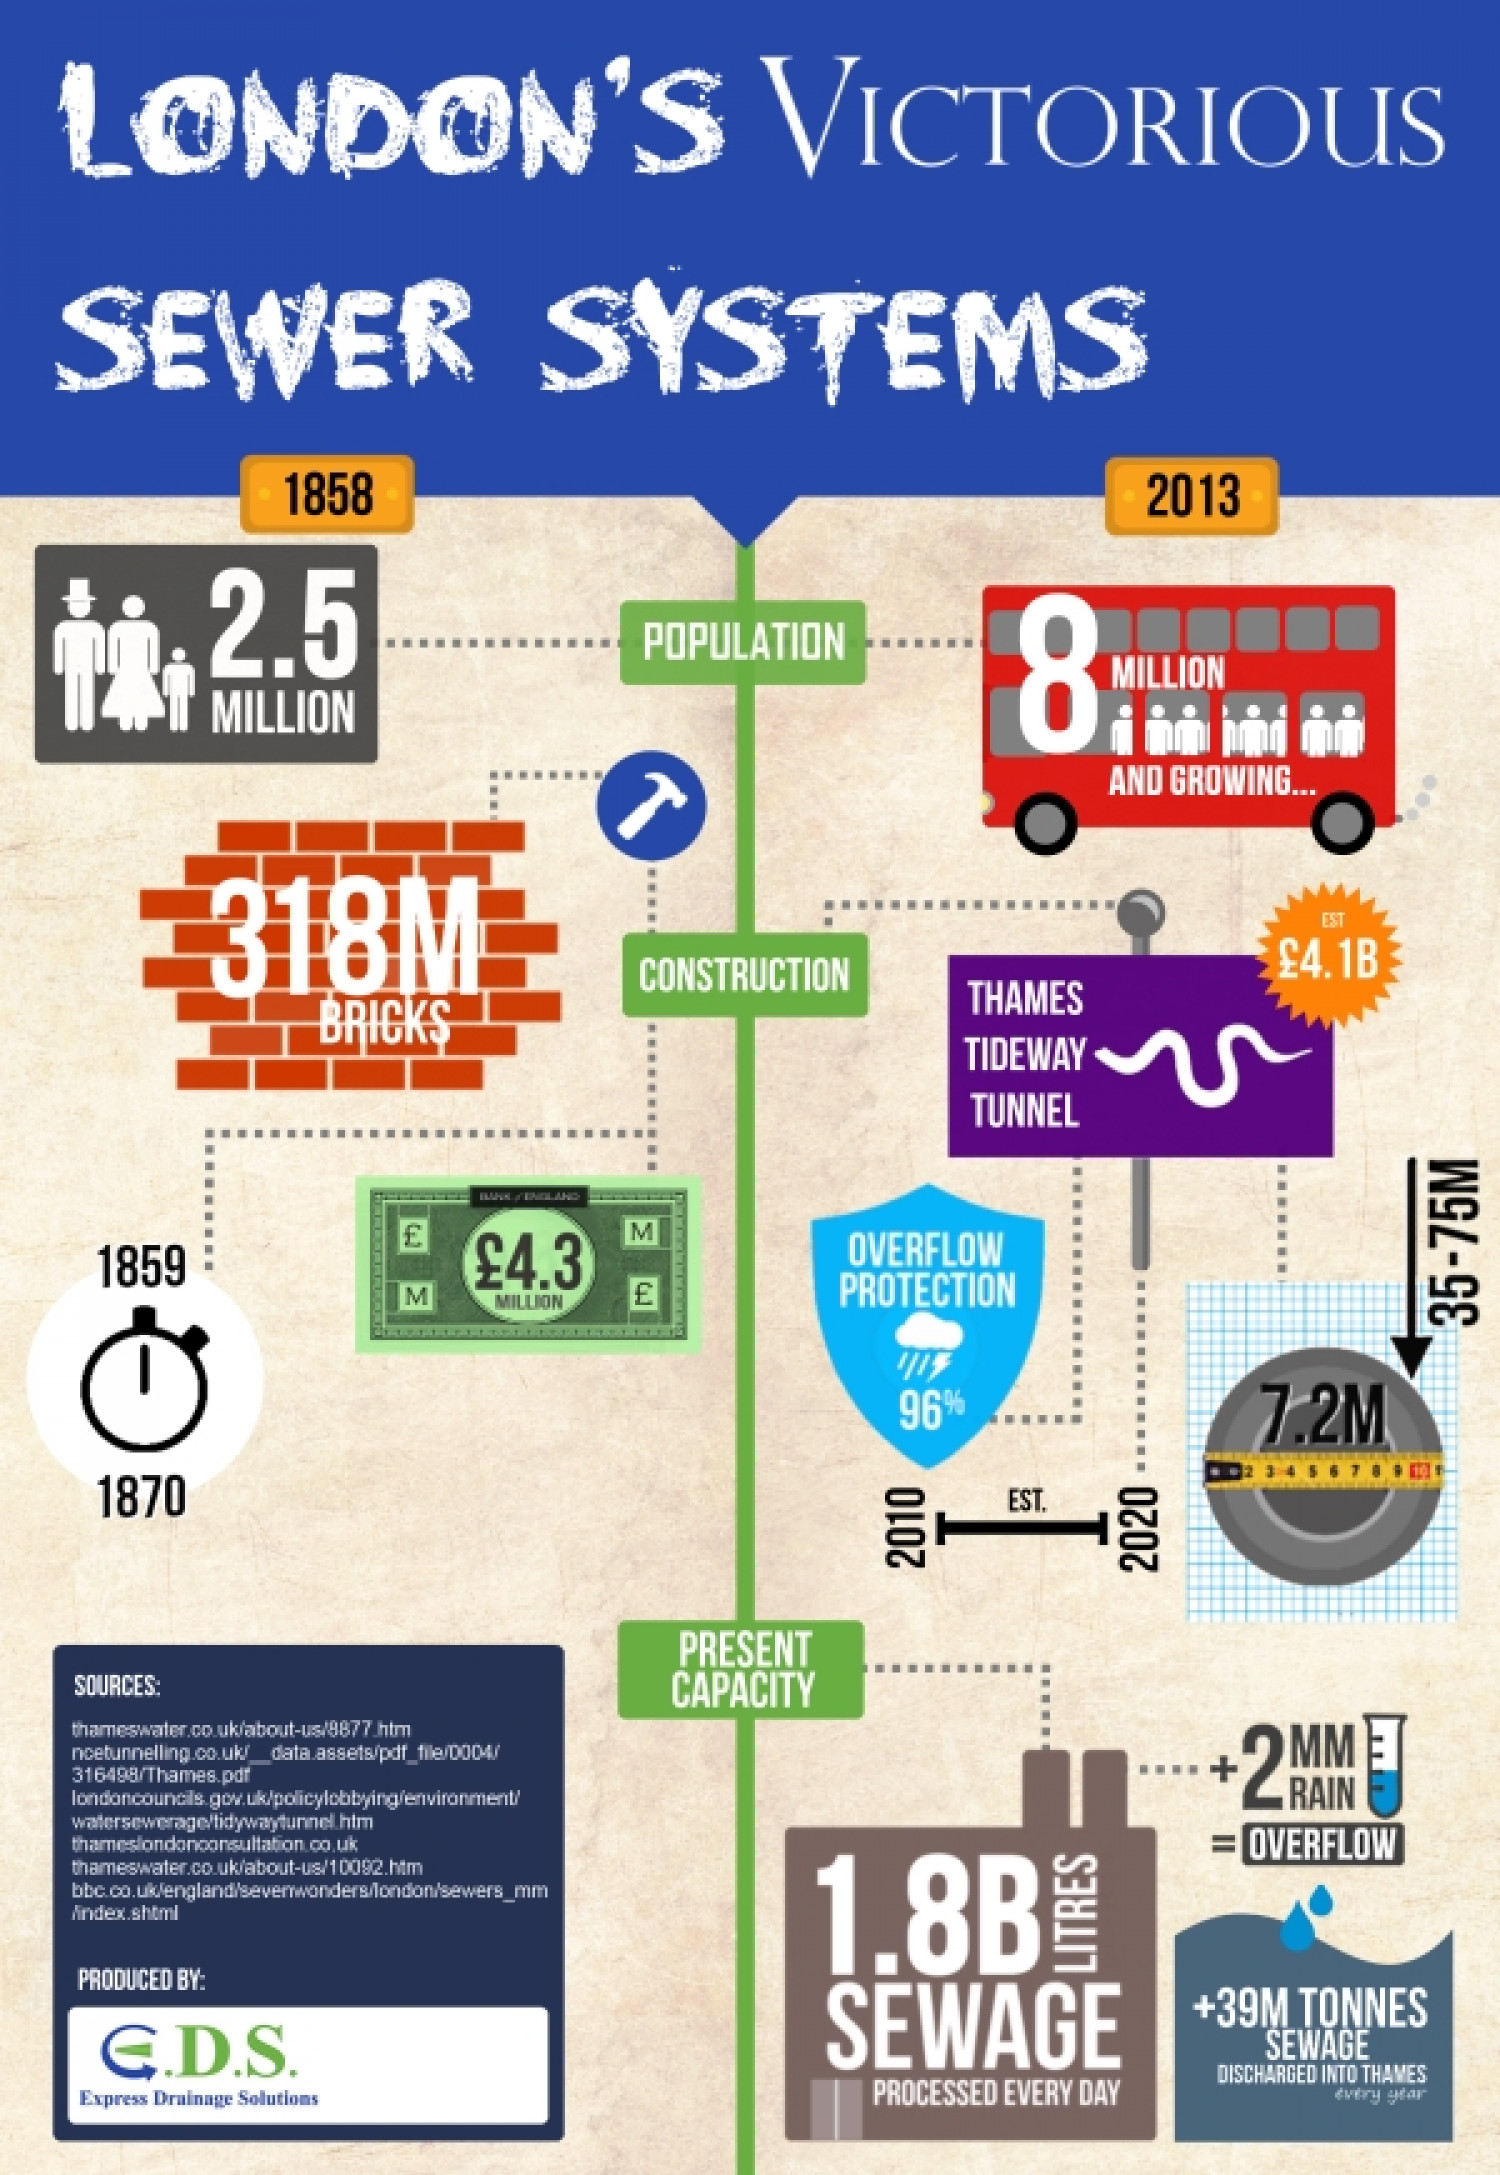 Upgrading London's Sewer Systems: Past, Present, Future Infographic